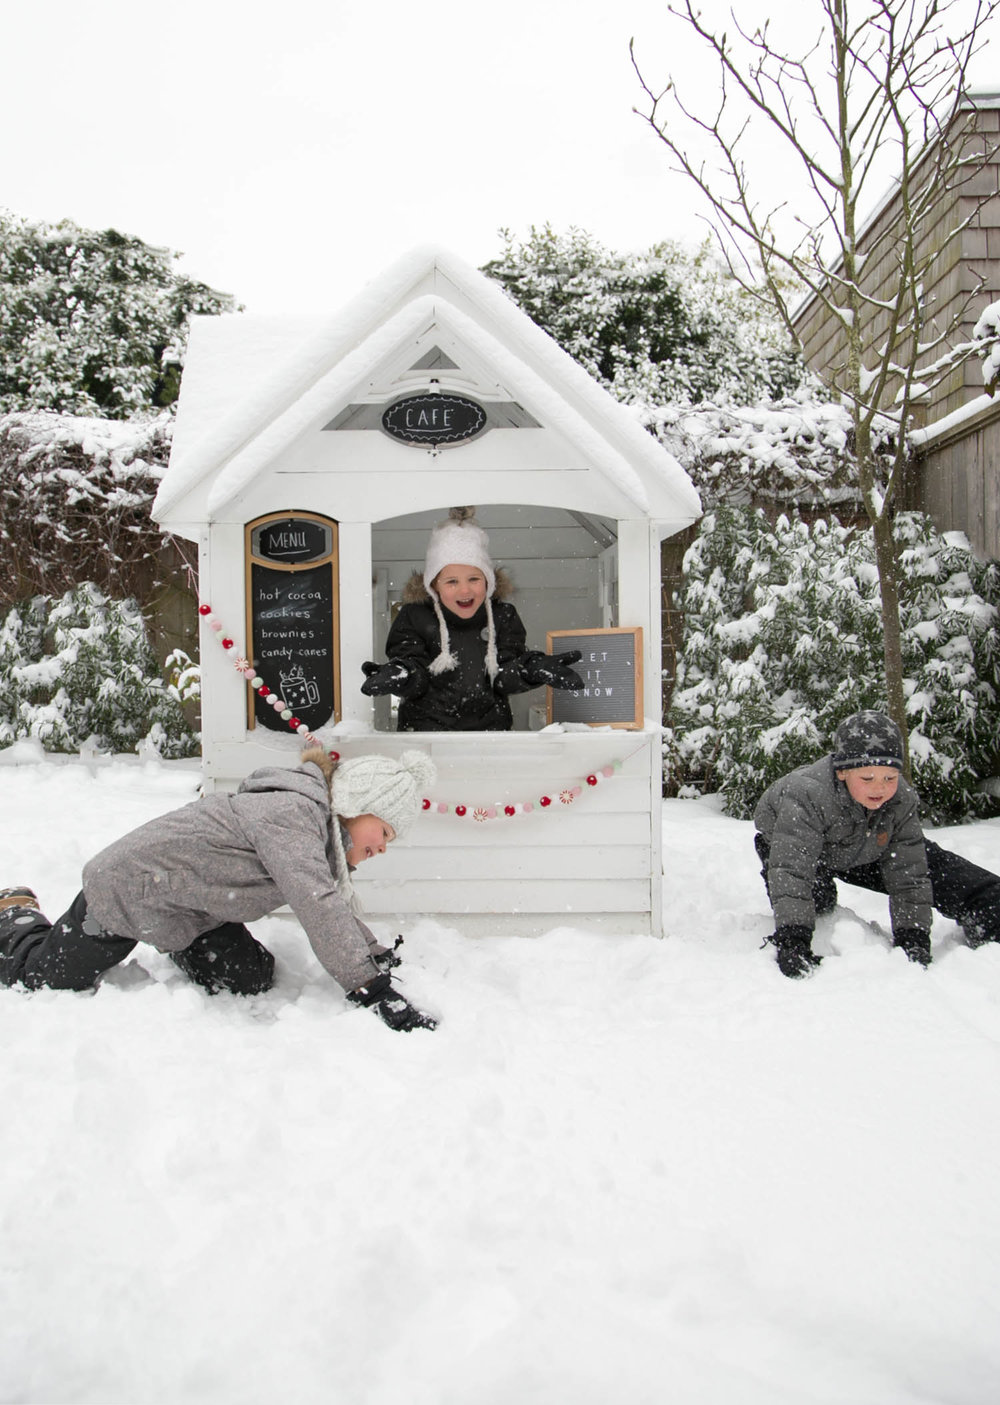 Kids playhouse in winter with snow